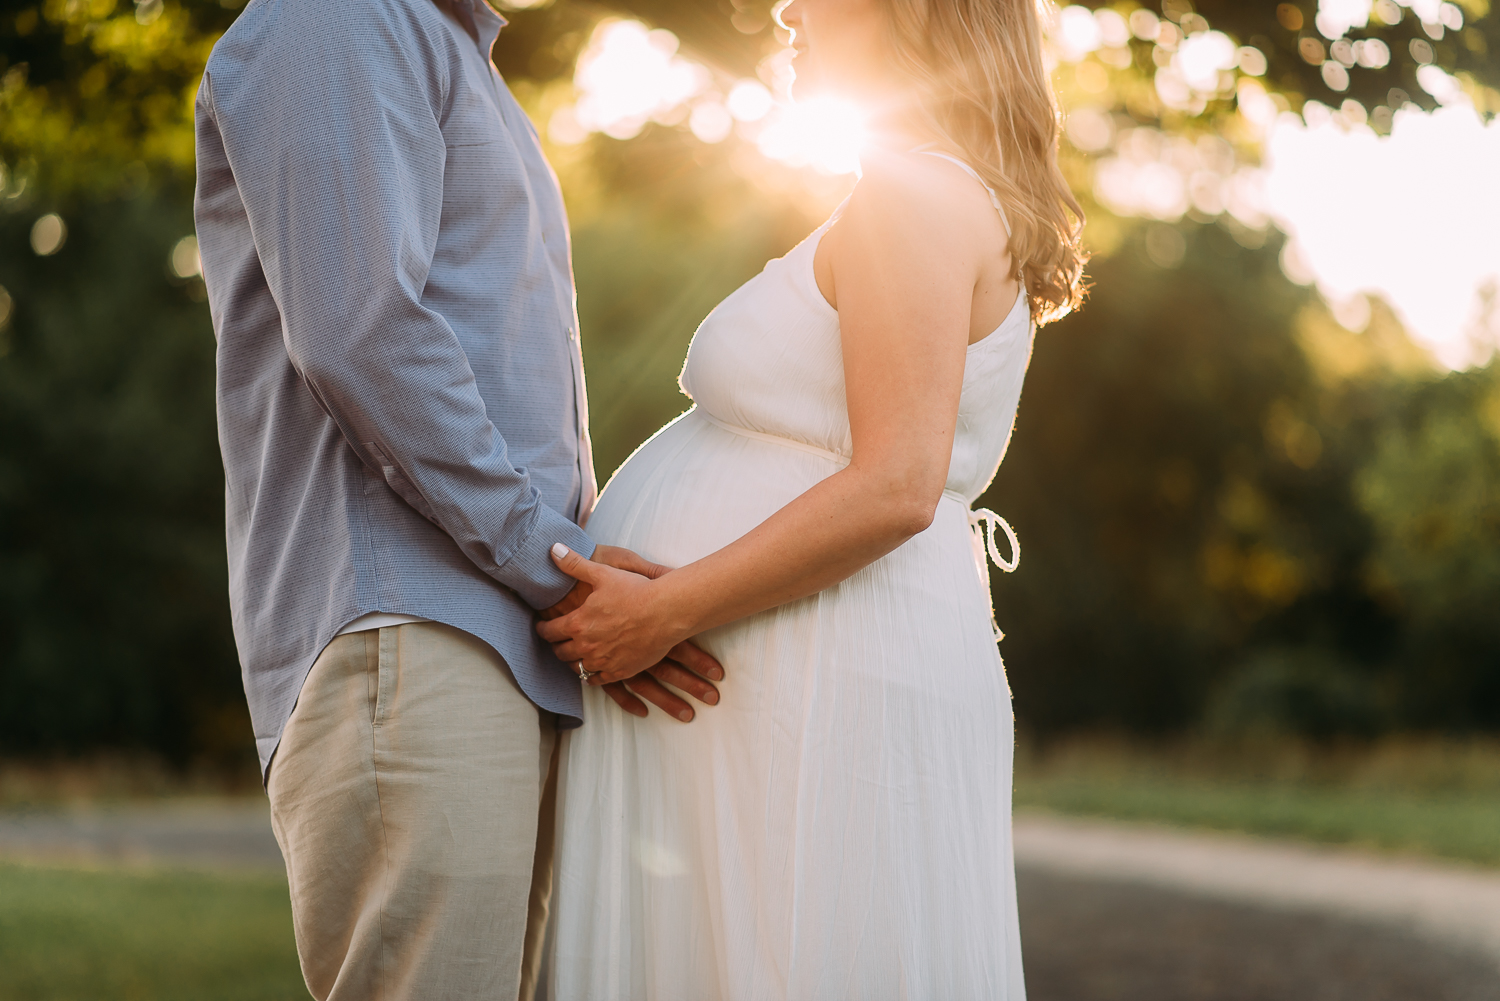 maternity photography pregnant woman with husband bump sunset Baltimore Photographer